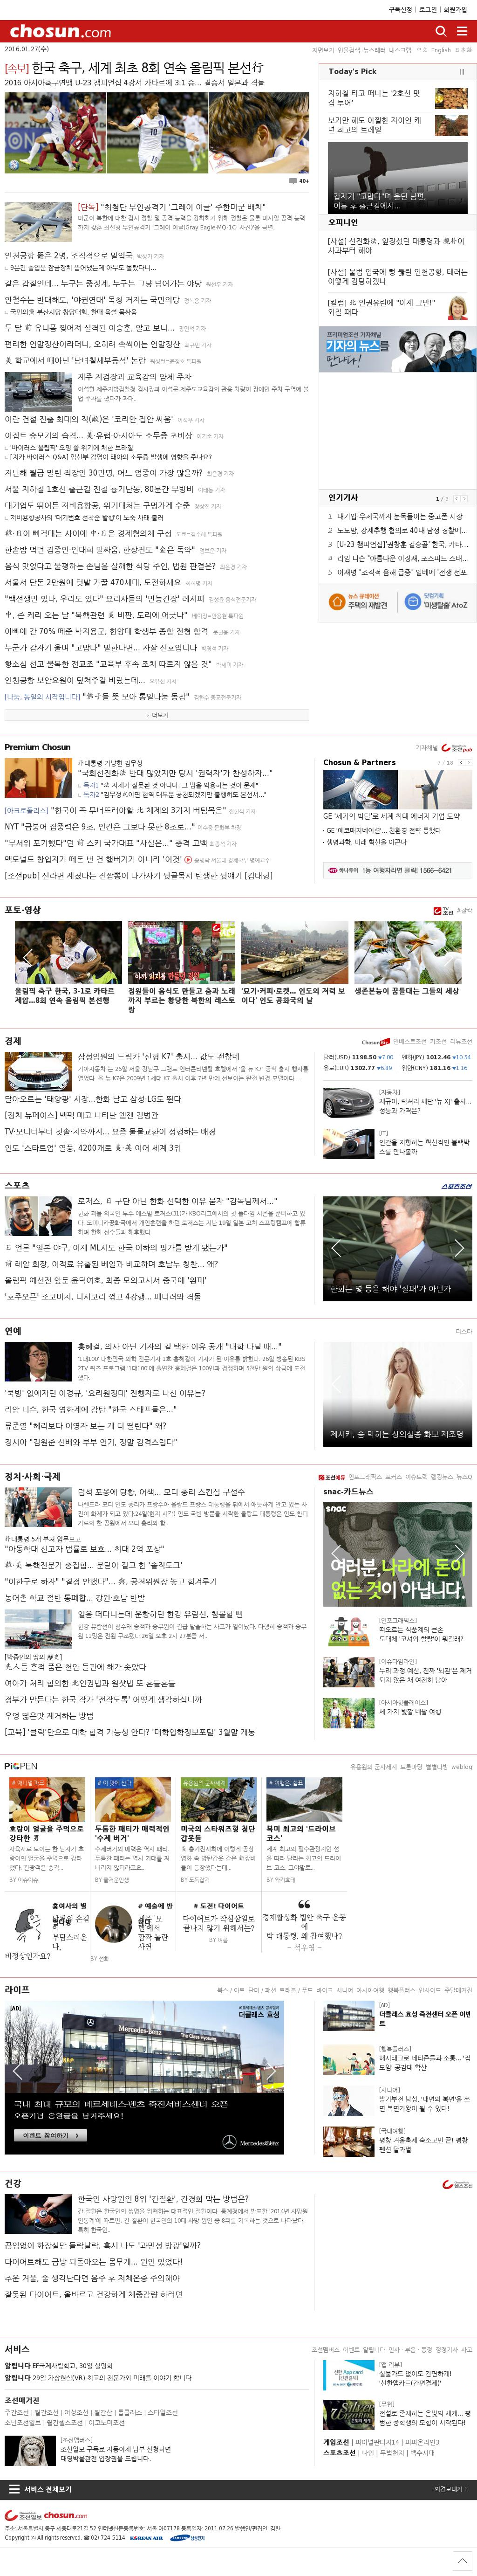 chosun.com at Wednesday Jan. 27, 2016, 12:03 a.m. UTC